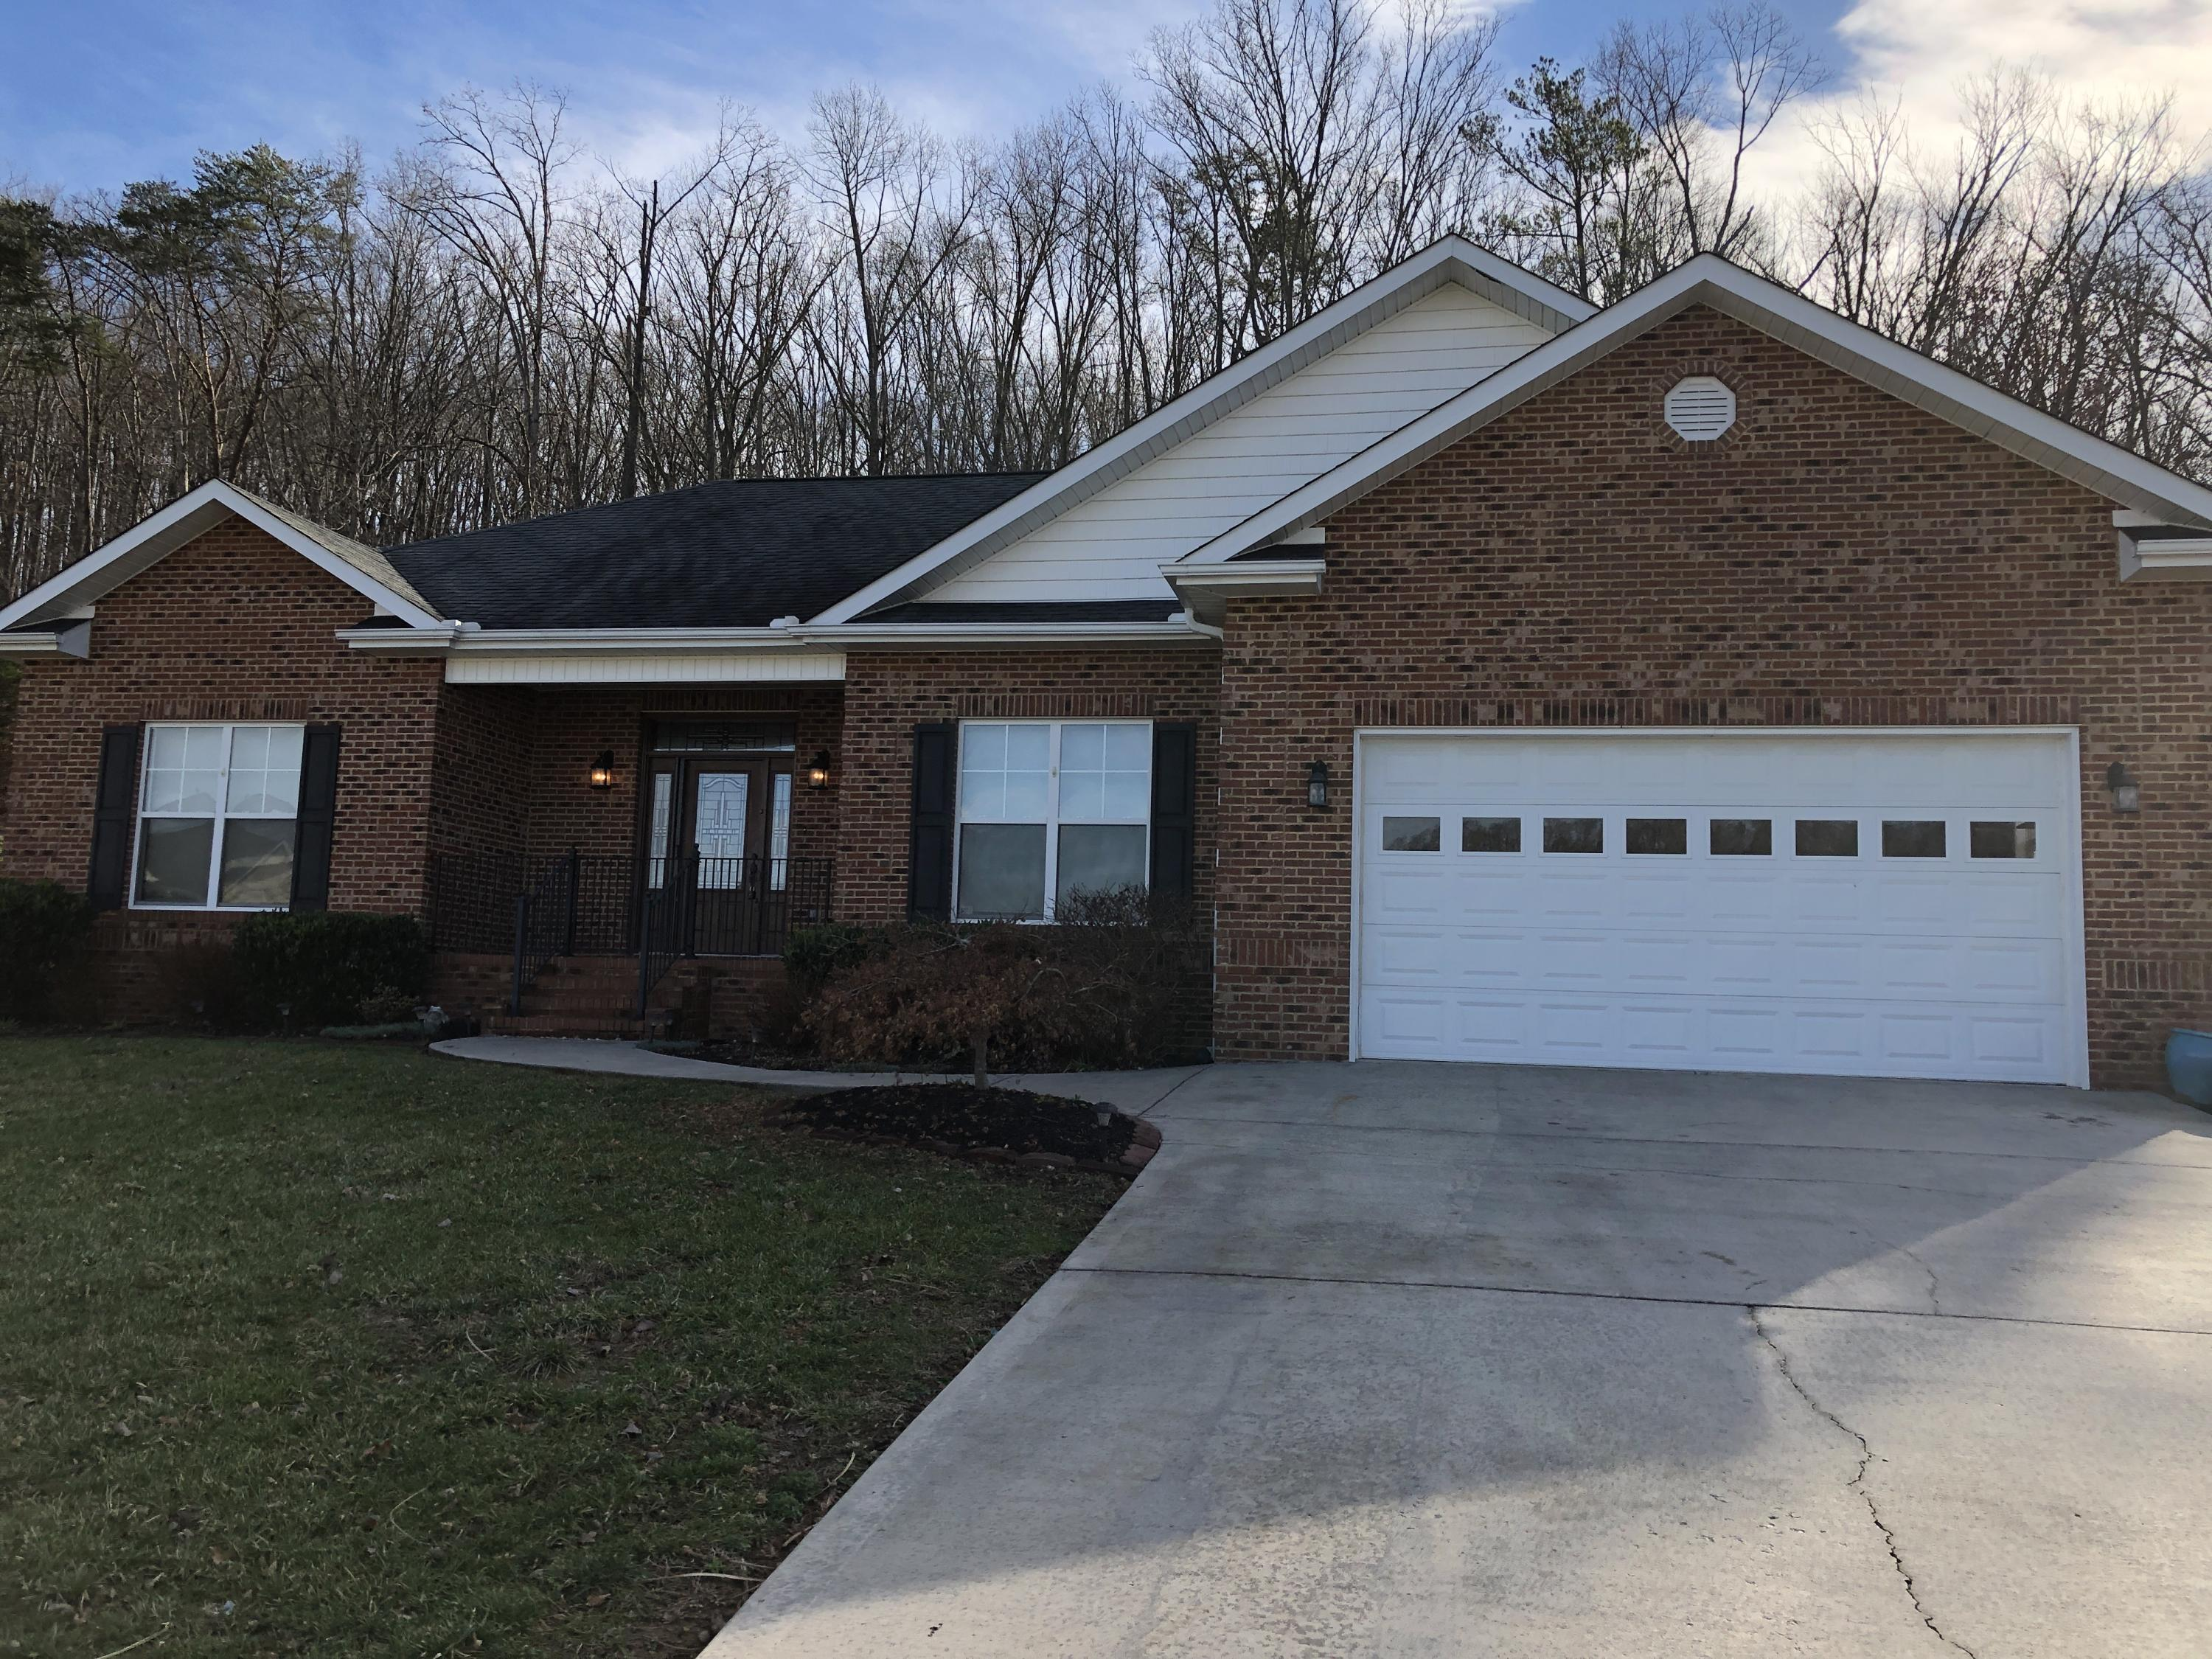 6346 Christian Springs Drive, Corryton, Tennessee 37721, 3 Bedrooms Bedrooms, ,2 BathroomsBathrooms,Single Family,For Sale,Christian Springs,1065829